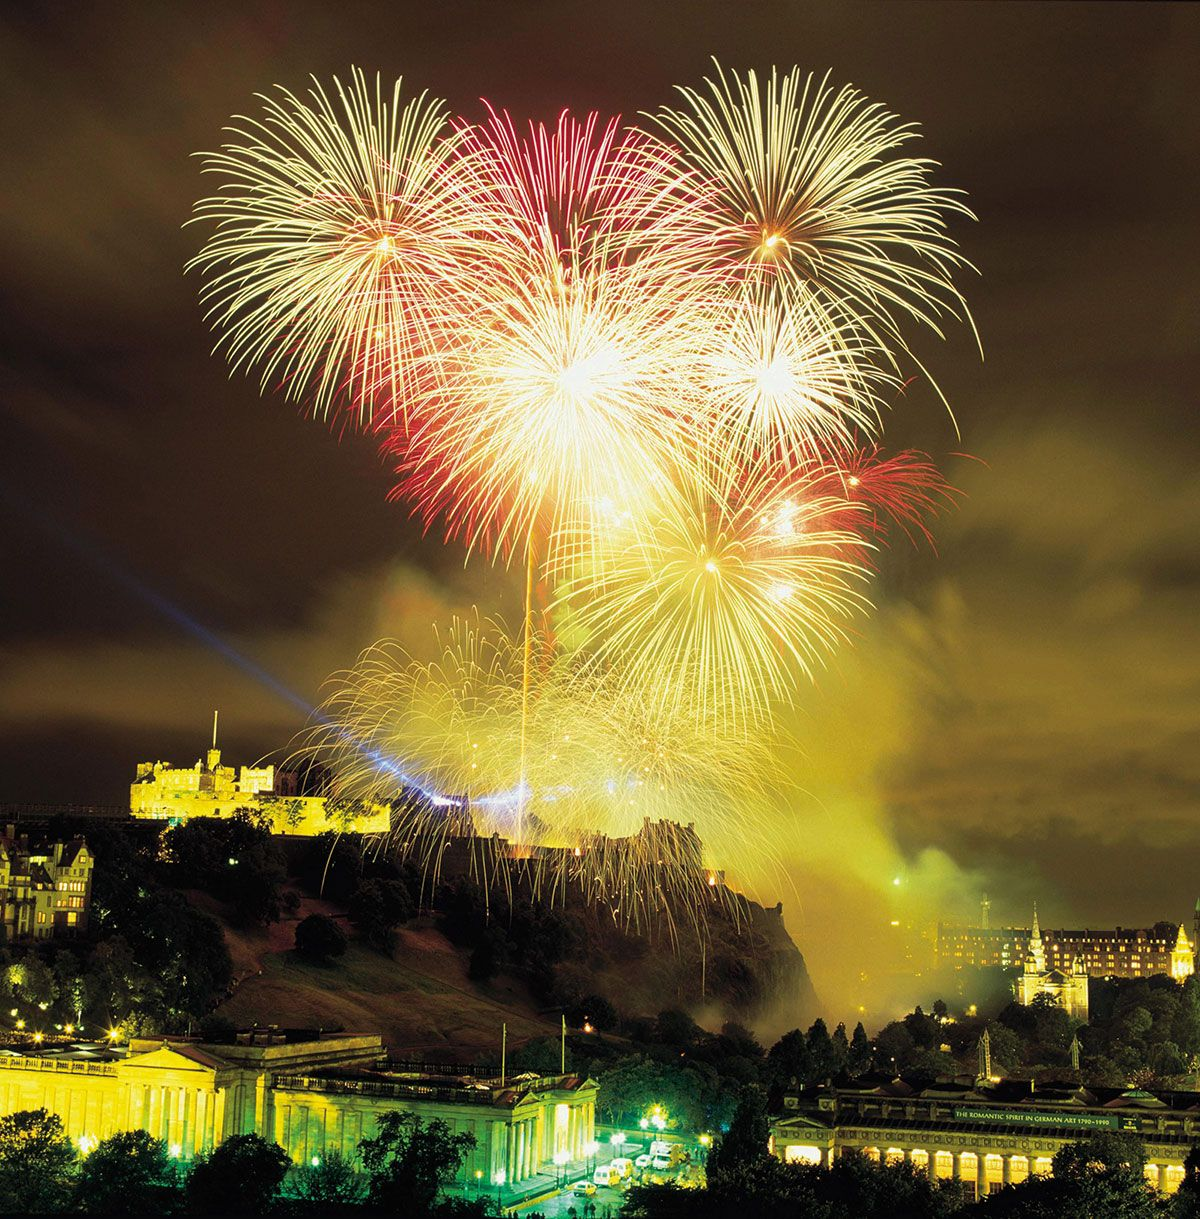 Are You Staying In Edinburgh For New Year S Eve Check Out Our Latest News On What S Happening In The City Edi Edinburgh New Year New Year Fireworks Fireworks